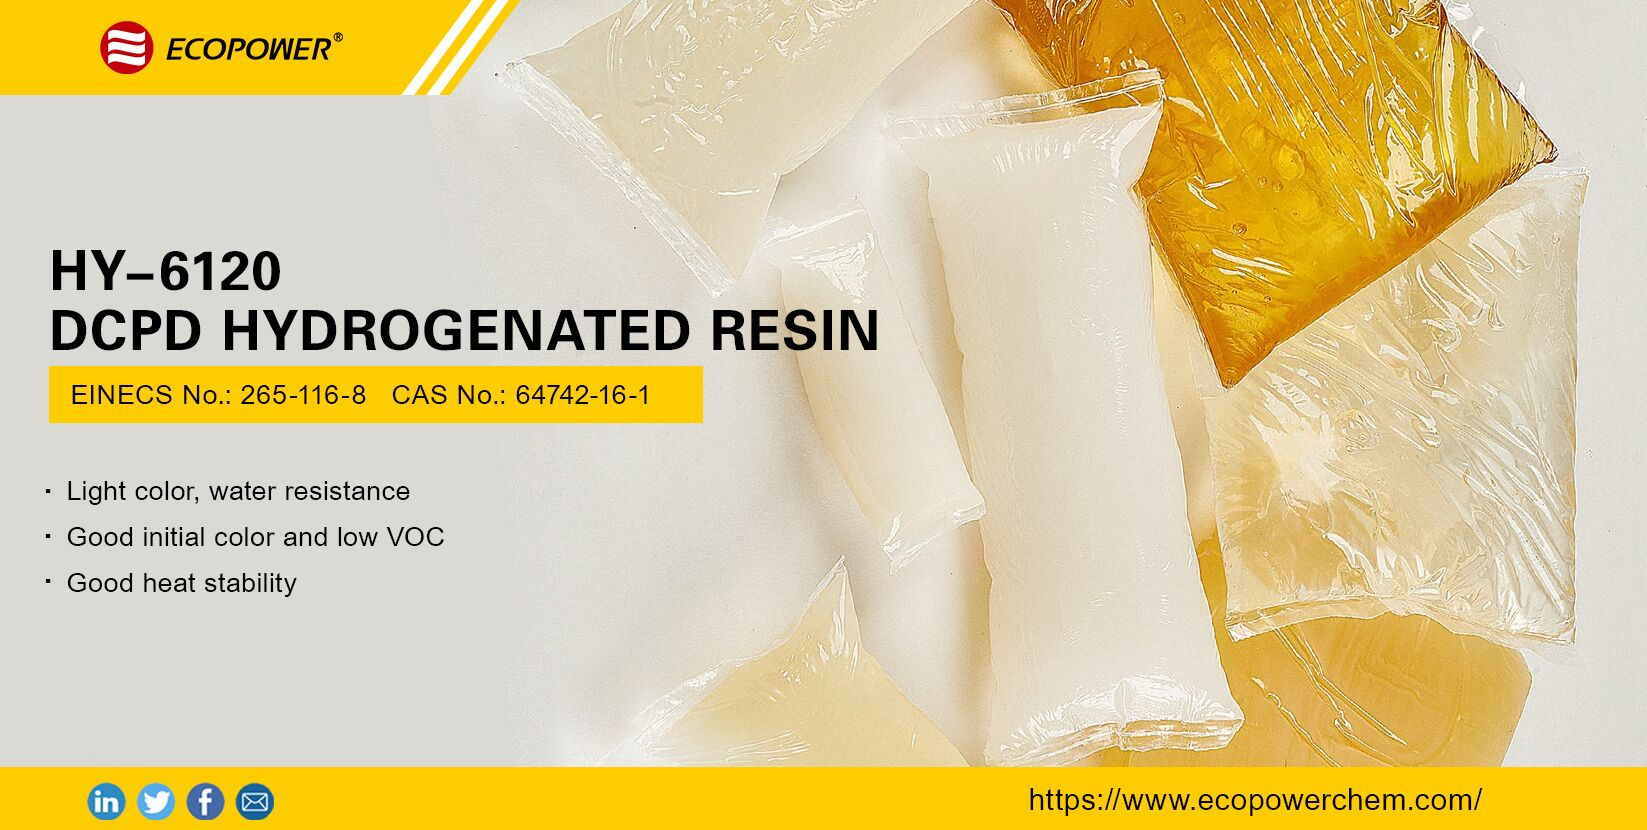 DCPD Hydrogenated Resin